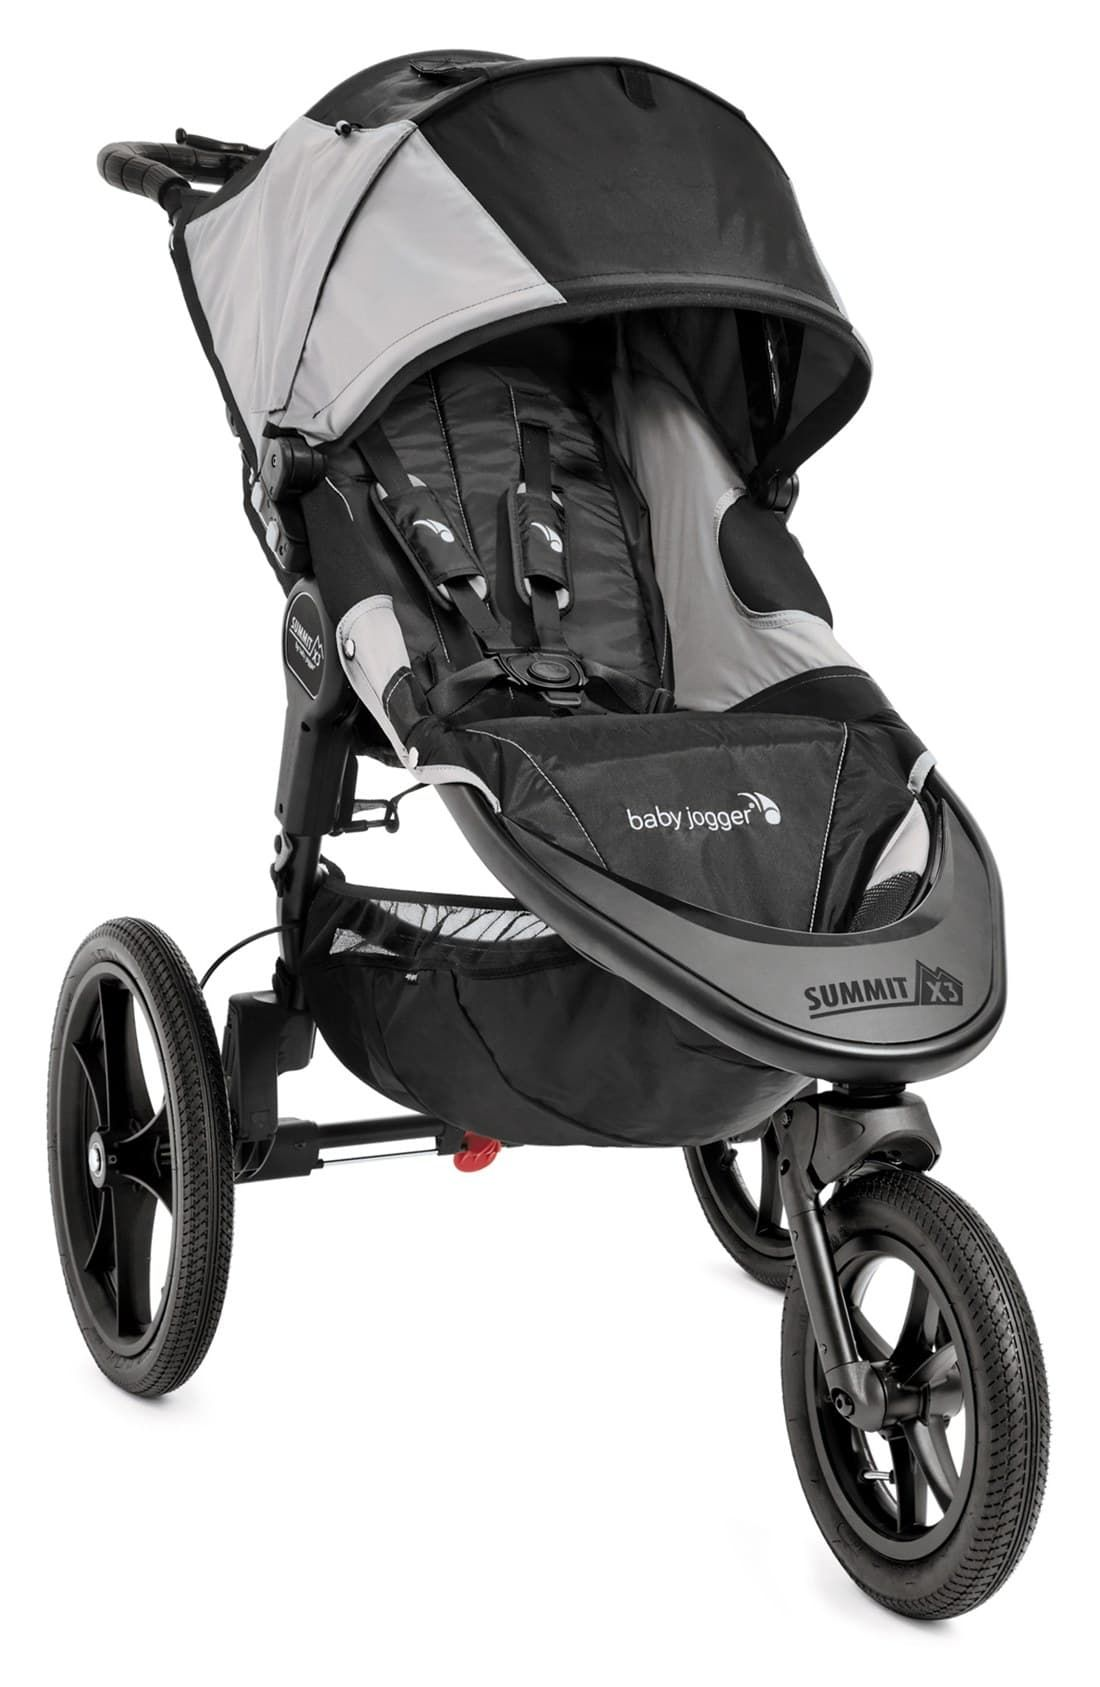 Infant Baby Jogger Summit™ X3 Single Jogging Stroller